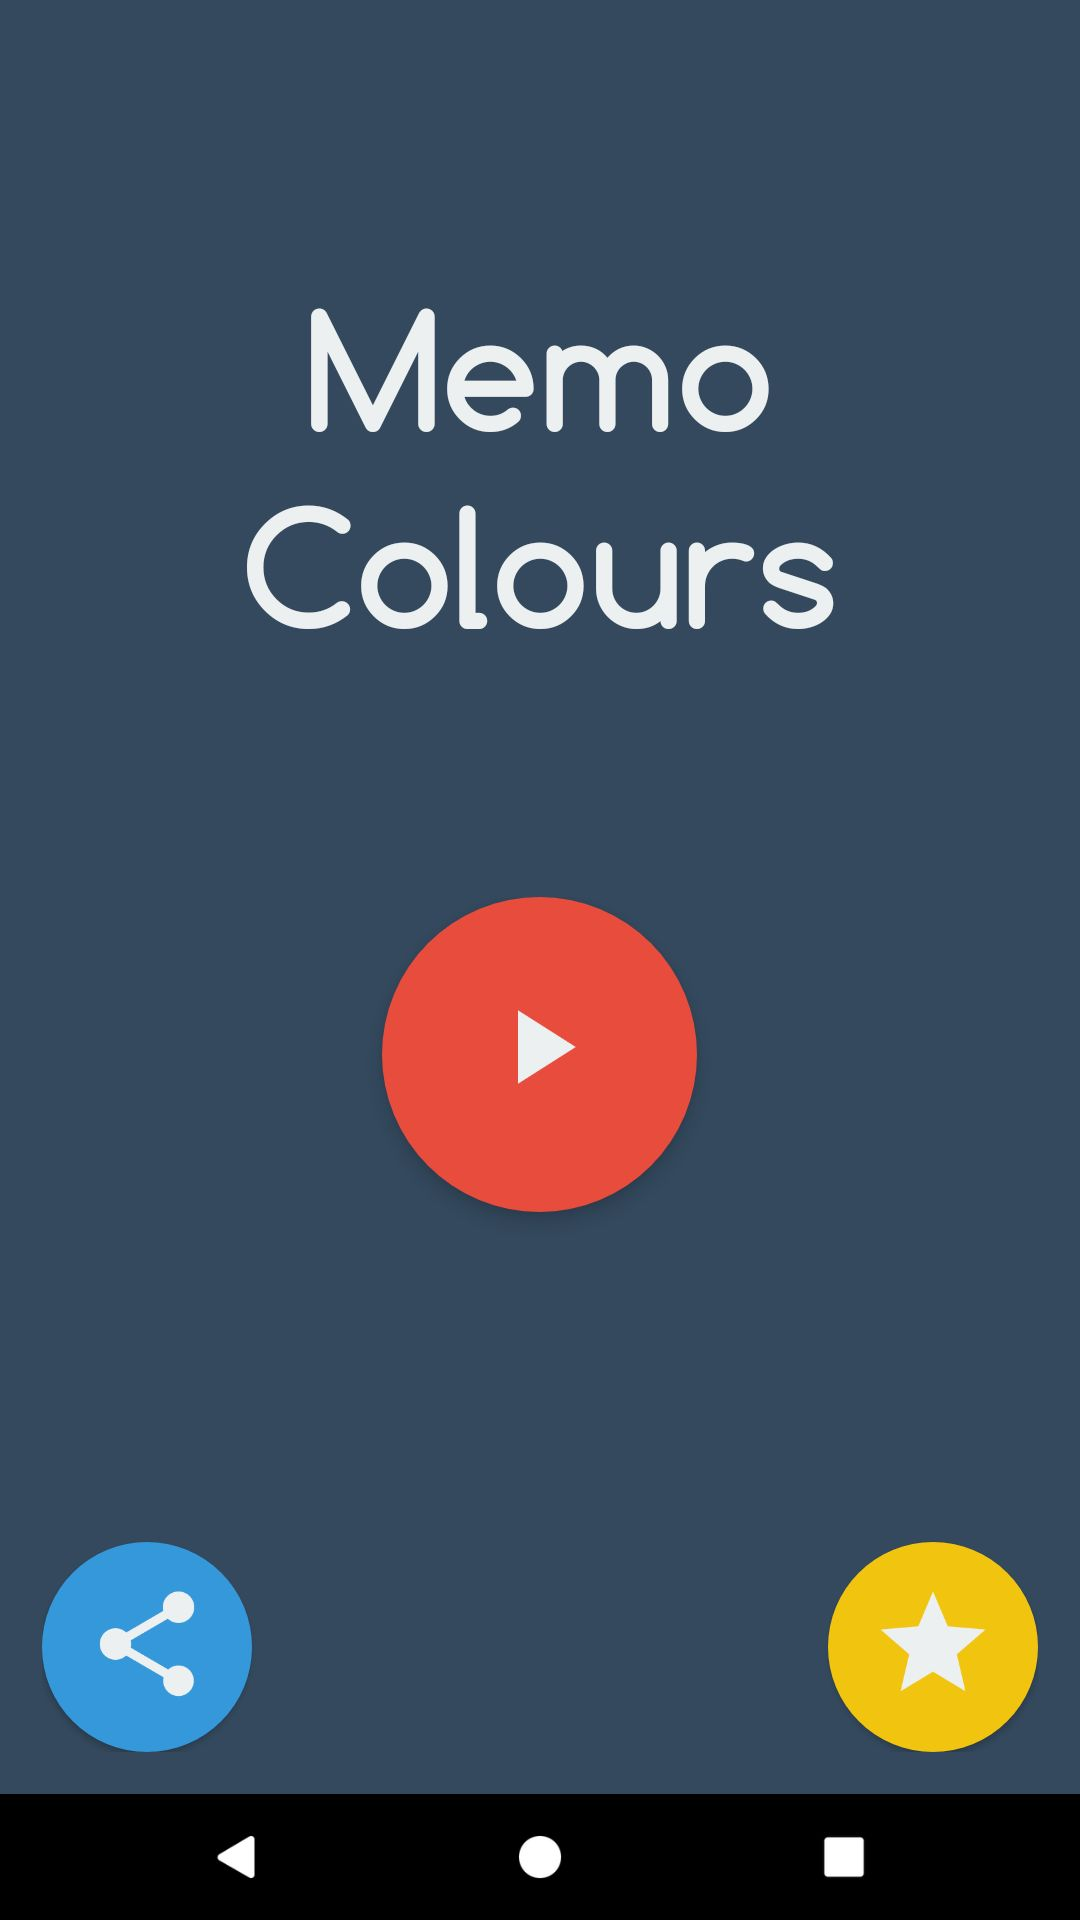 Memo Colours - Android Game Source Code Screenshot 1